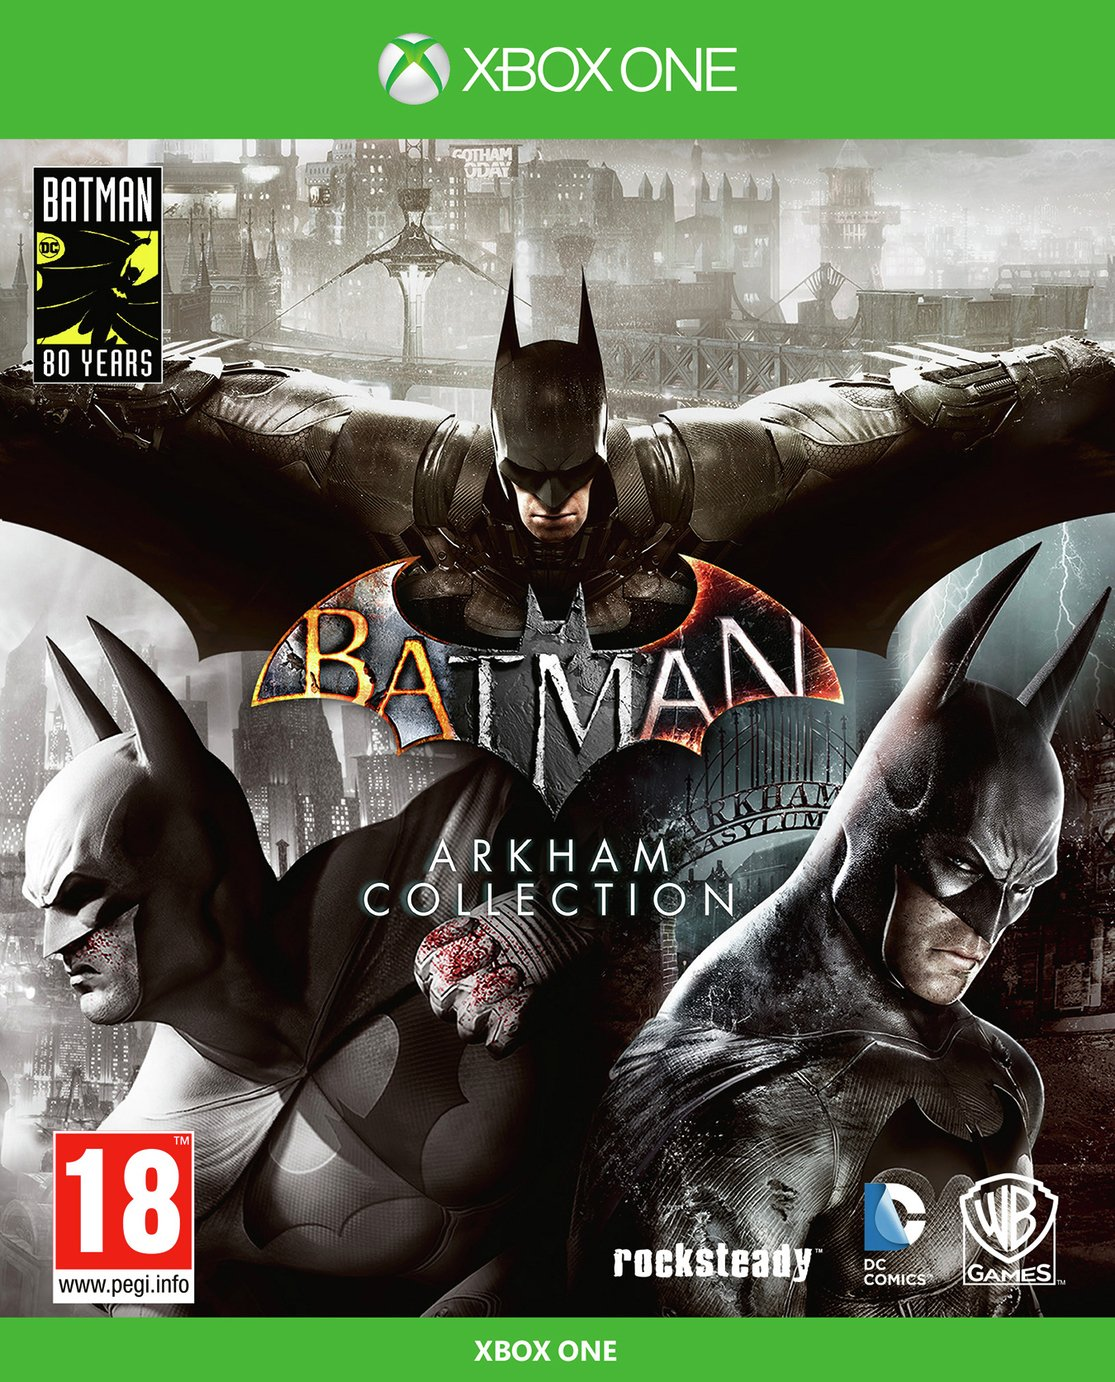 Batman Arkham Collection Steelbook Edn Xbox One Pre-Order